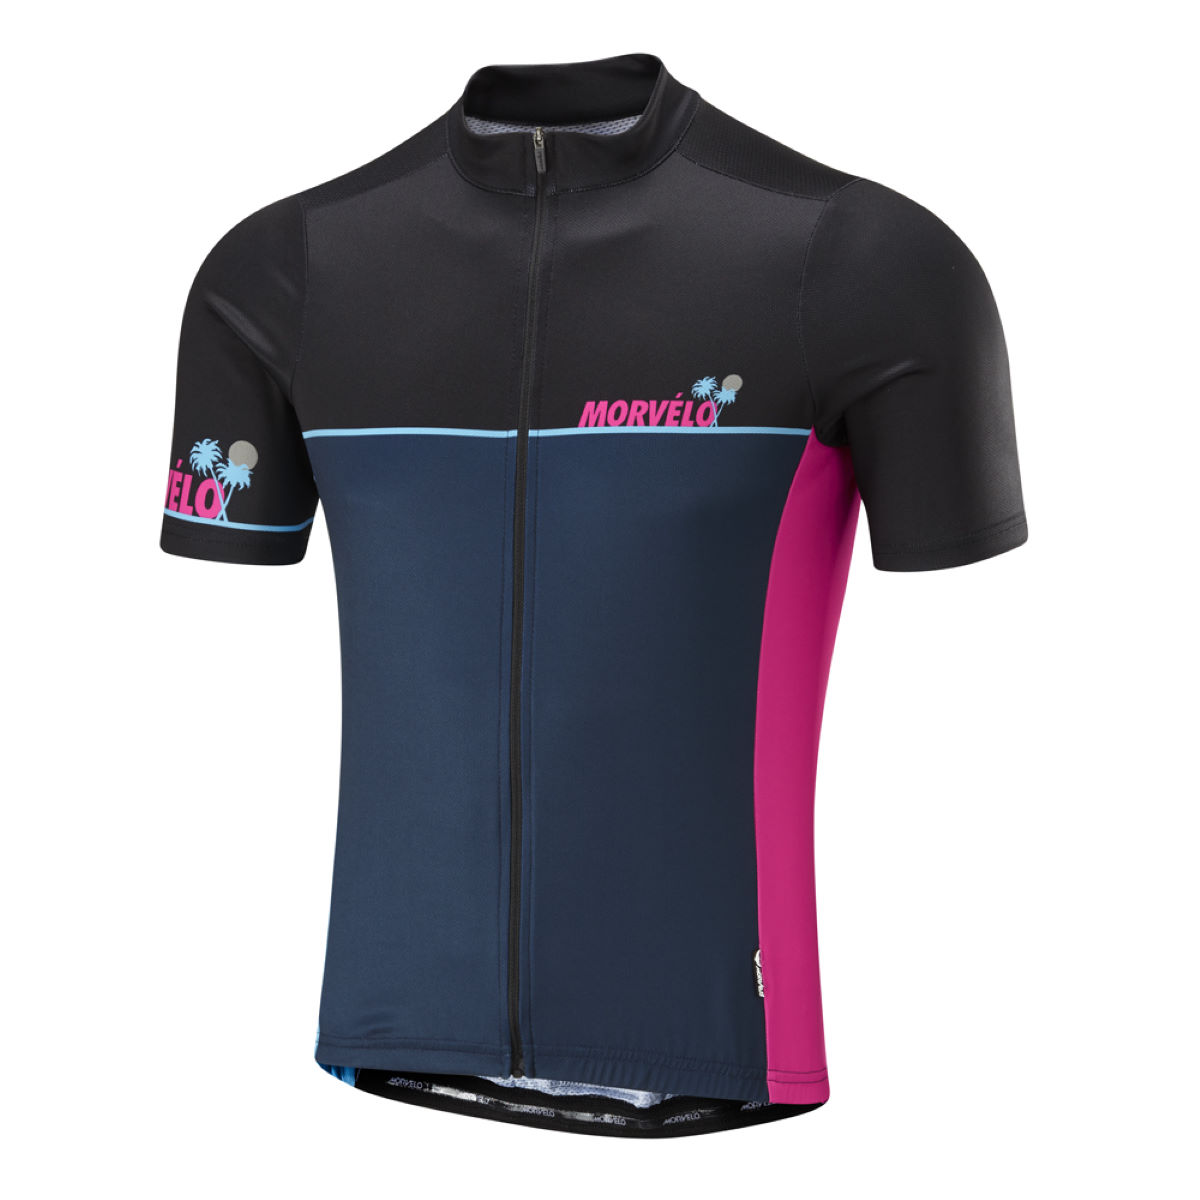 Maillot Morvelo Crocket (manches courtes) - S Crocket